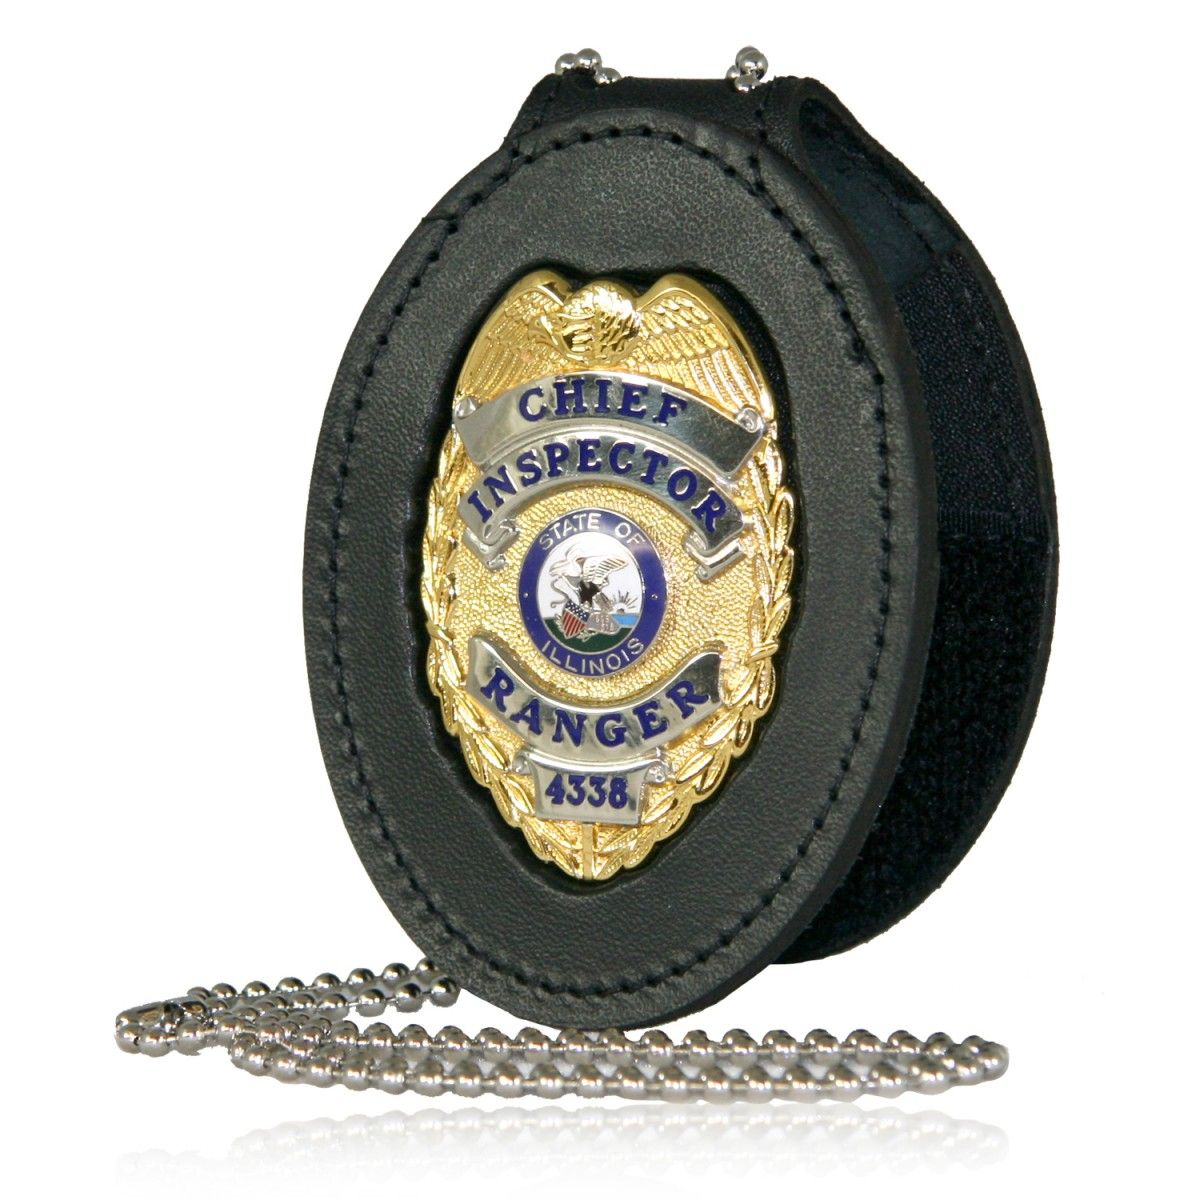 Deluxe Oval Recessed Badge Holder with Clip